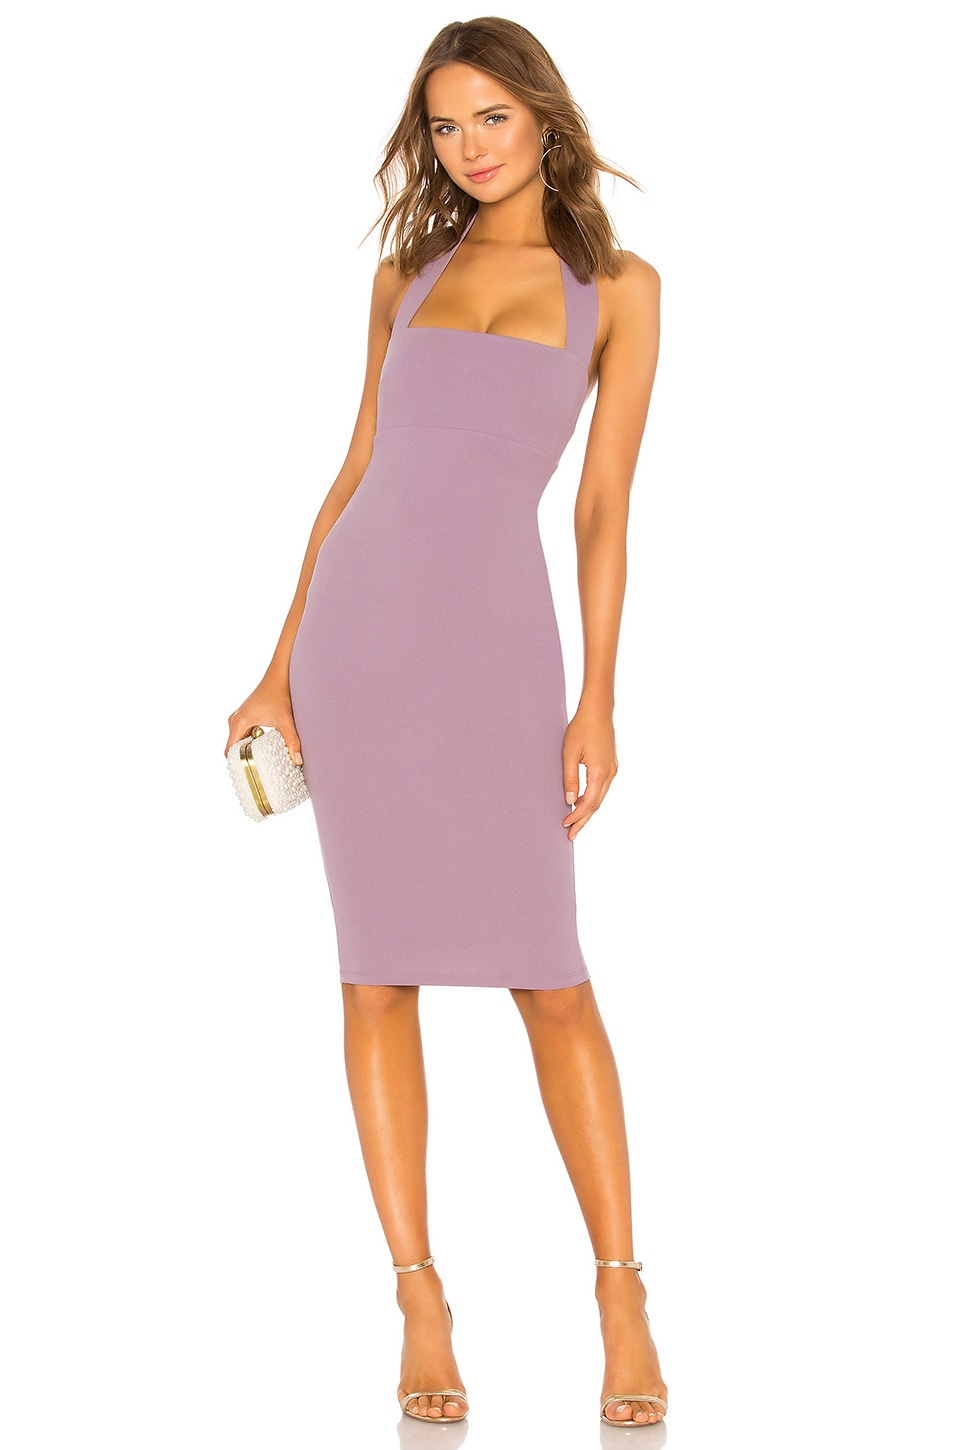 Nookie X Revolve Boulevard Midi Dress in Soft Violet